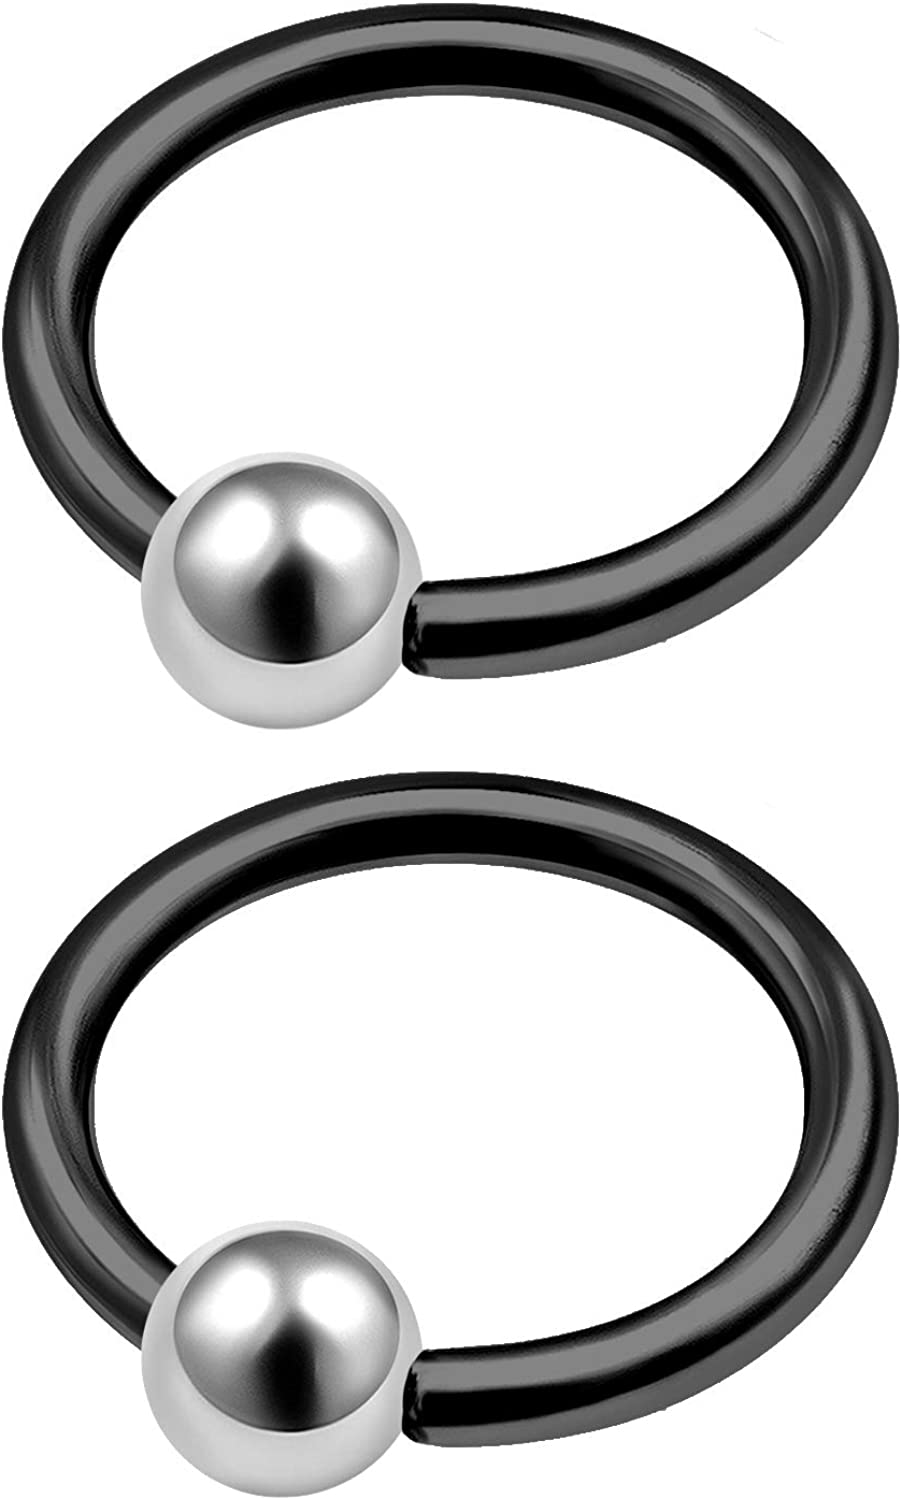 MATIGA 2Pcs Black Anodized 14g Captive Bead Ring Piercing Jewelry Tragus Nose Septum Eyebrow Cartilage 4mm Steel Ball More Choices